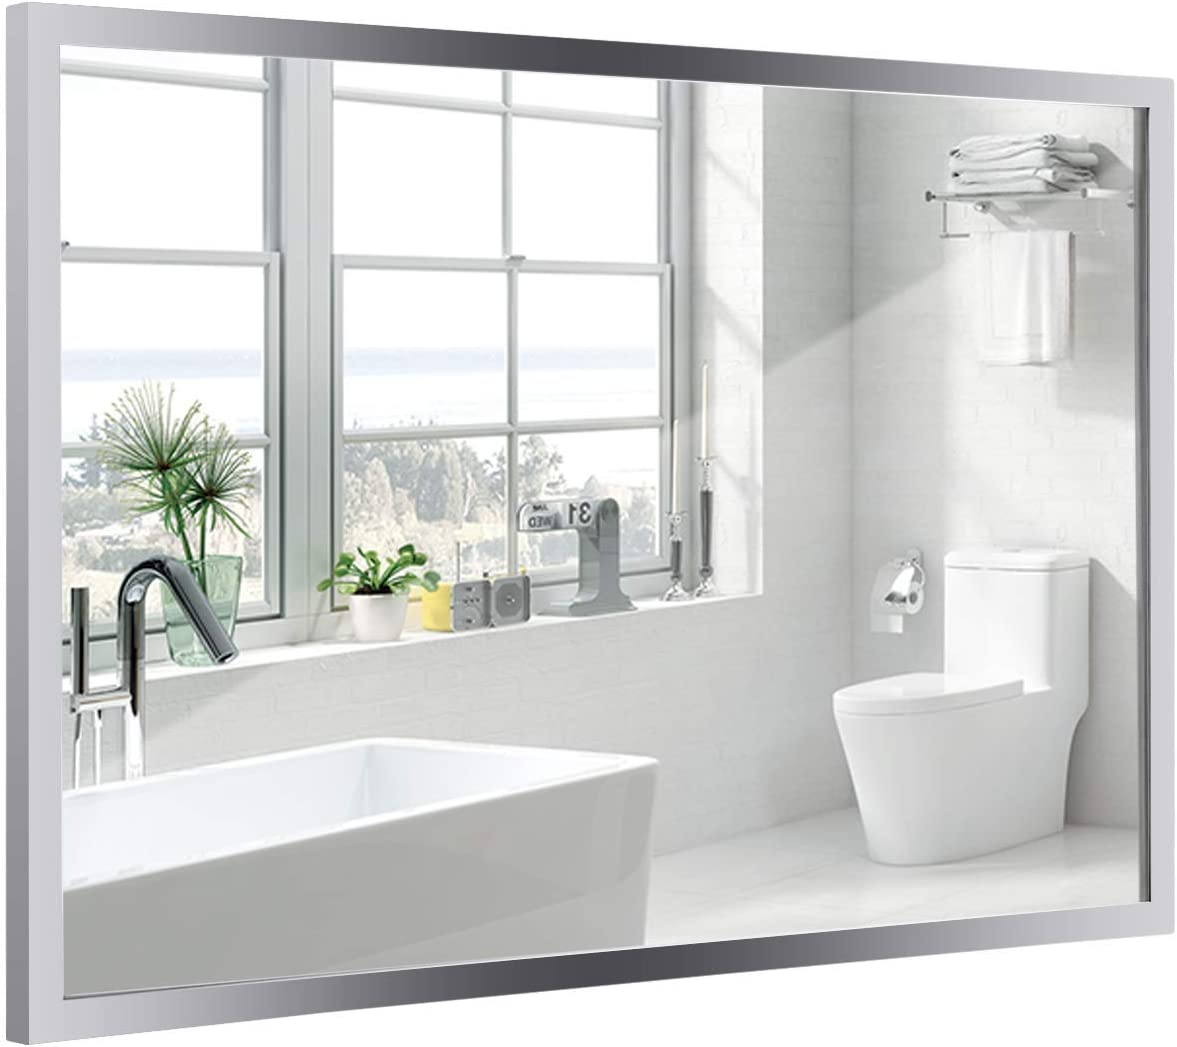 Tangkula Bathroom Mirror, Wall Mounted Simple Modern Rectangular Stainless Steel Frame Mirror, Aluminum Backed Floating Glass, Bedroom Hangs Horizontal Vertical Vanity Mirror 36 x24